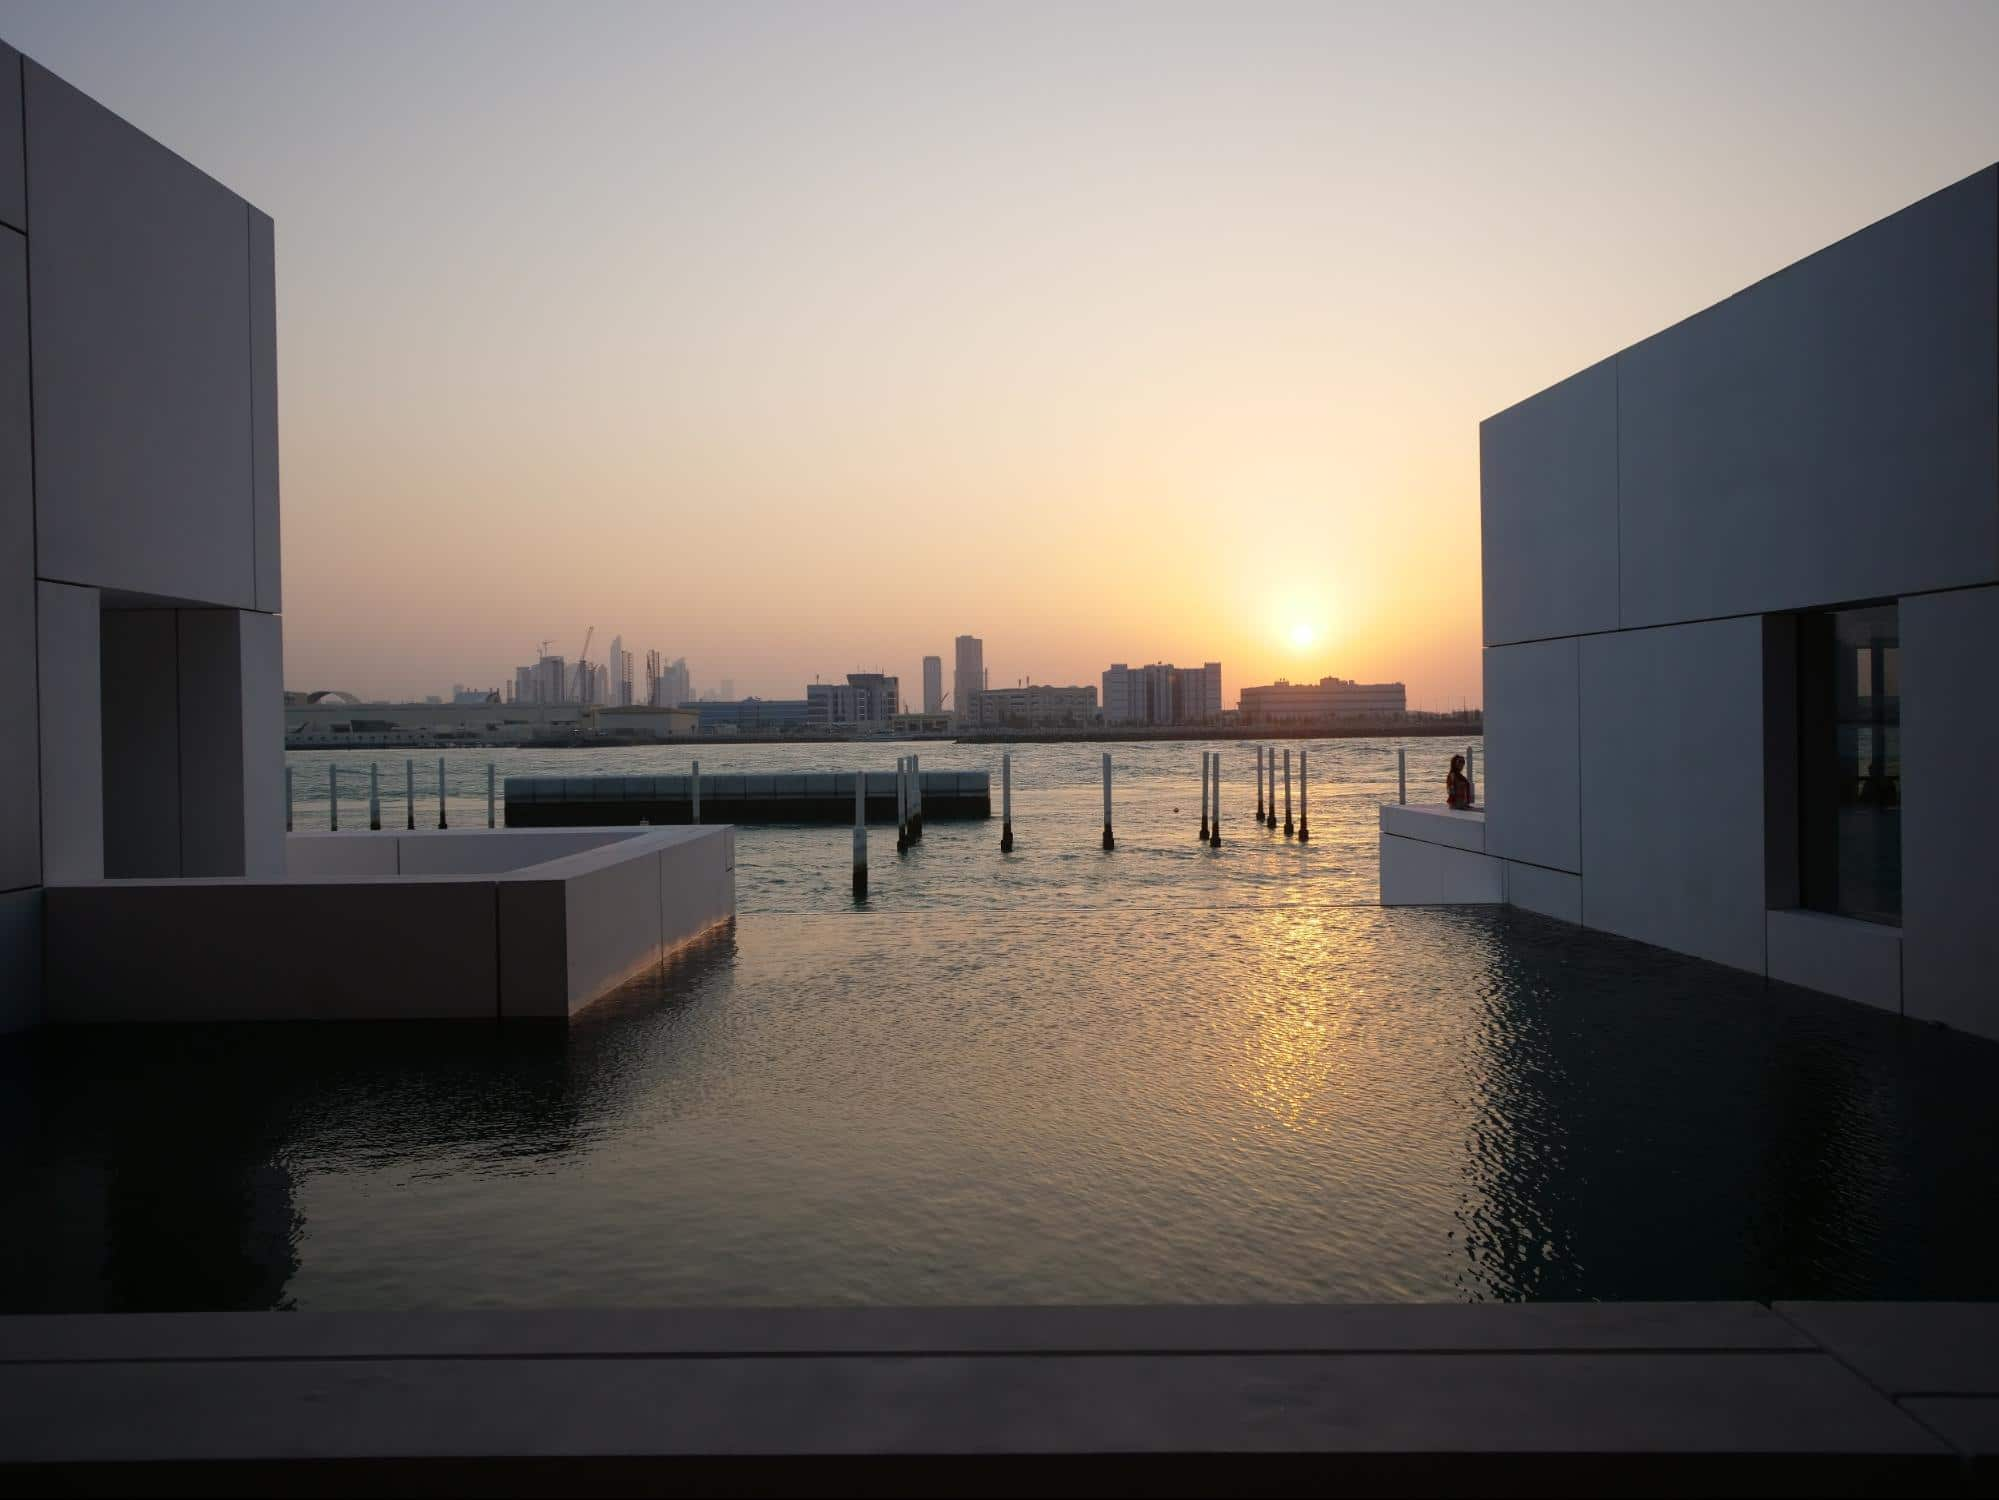 The Louvre Museum Abu Dhabi sunset